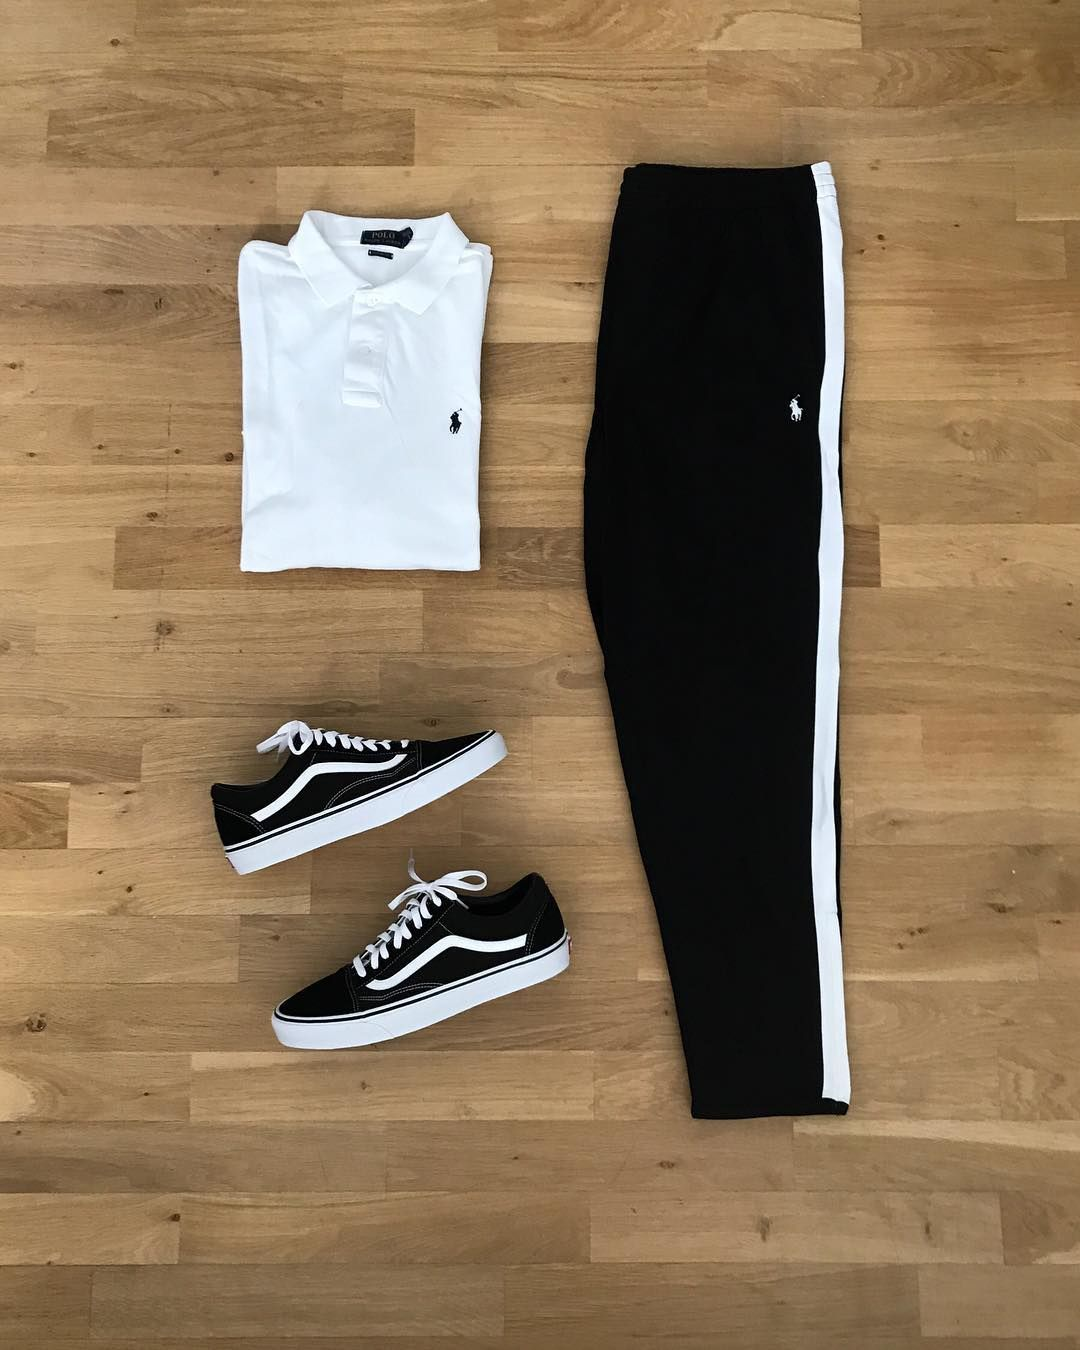 "@daily fashiondose on Instagram ""Black & White @poloralphlauren x @vans outfitinspiration      ⚪️⚫️⚪️⚫️⚪️⚫️⚪️⚫️⚪️⚫️⚪️⚫️ Do you think this combo works 💪🏼  "" is part of Streetwear outfit - 174 Likes, 3 Comments  @daily fashiondose on Instagram ""Black & White @poloralphlauren x @vans outfitinspiration      ⚪️⚫️⚪️⚫️⚪️⚫️⚪️⚫️⚪️⚫️⚪️⚫️ Do you…"""